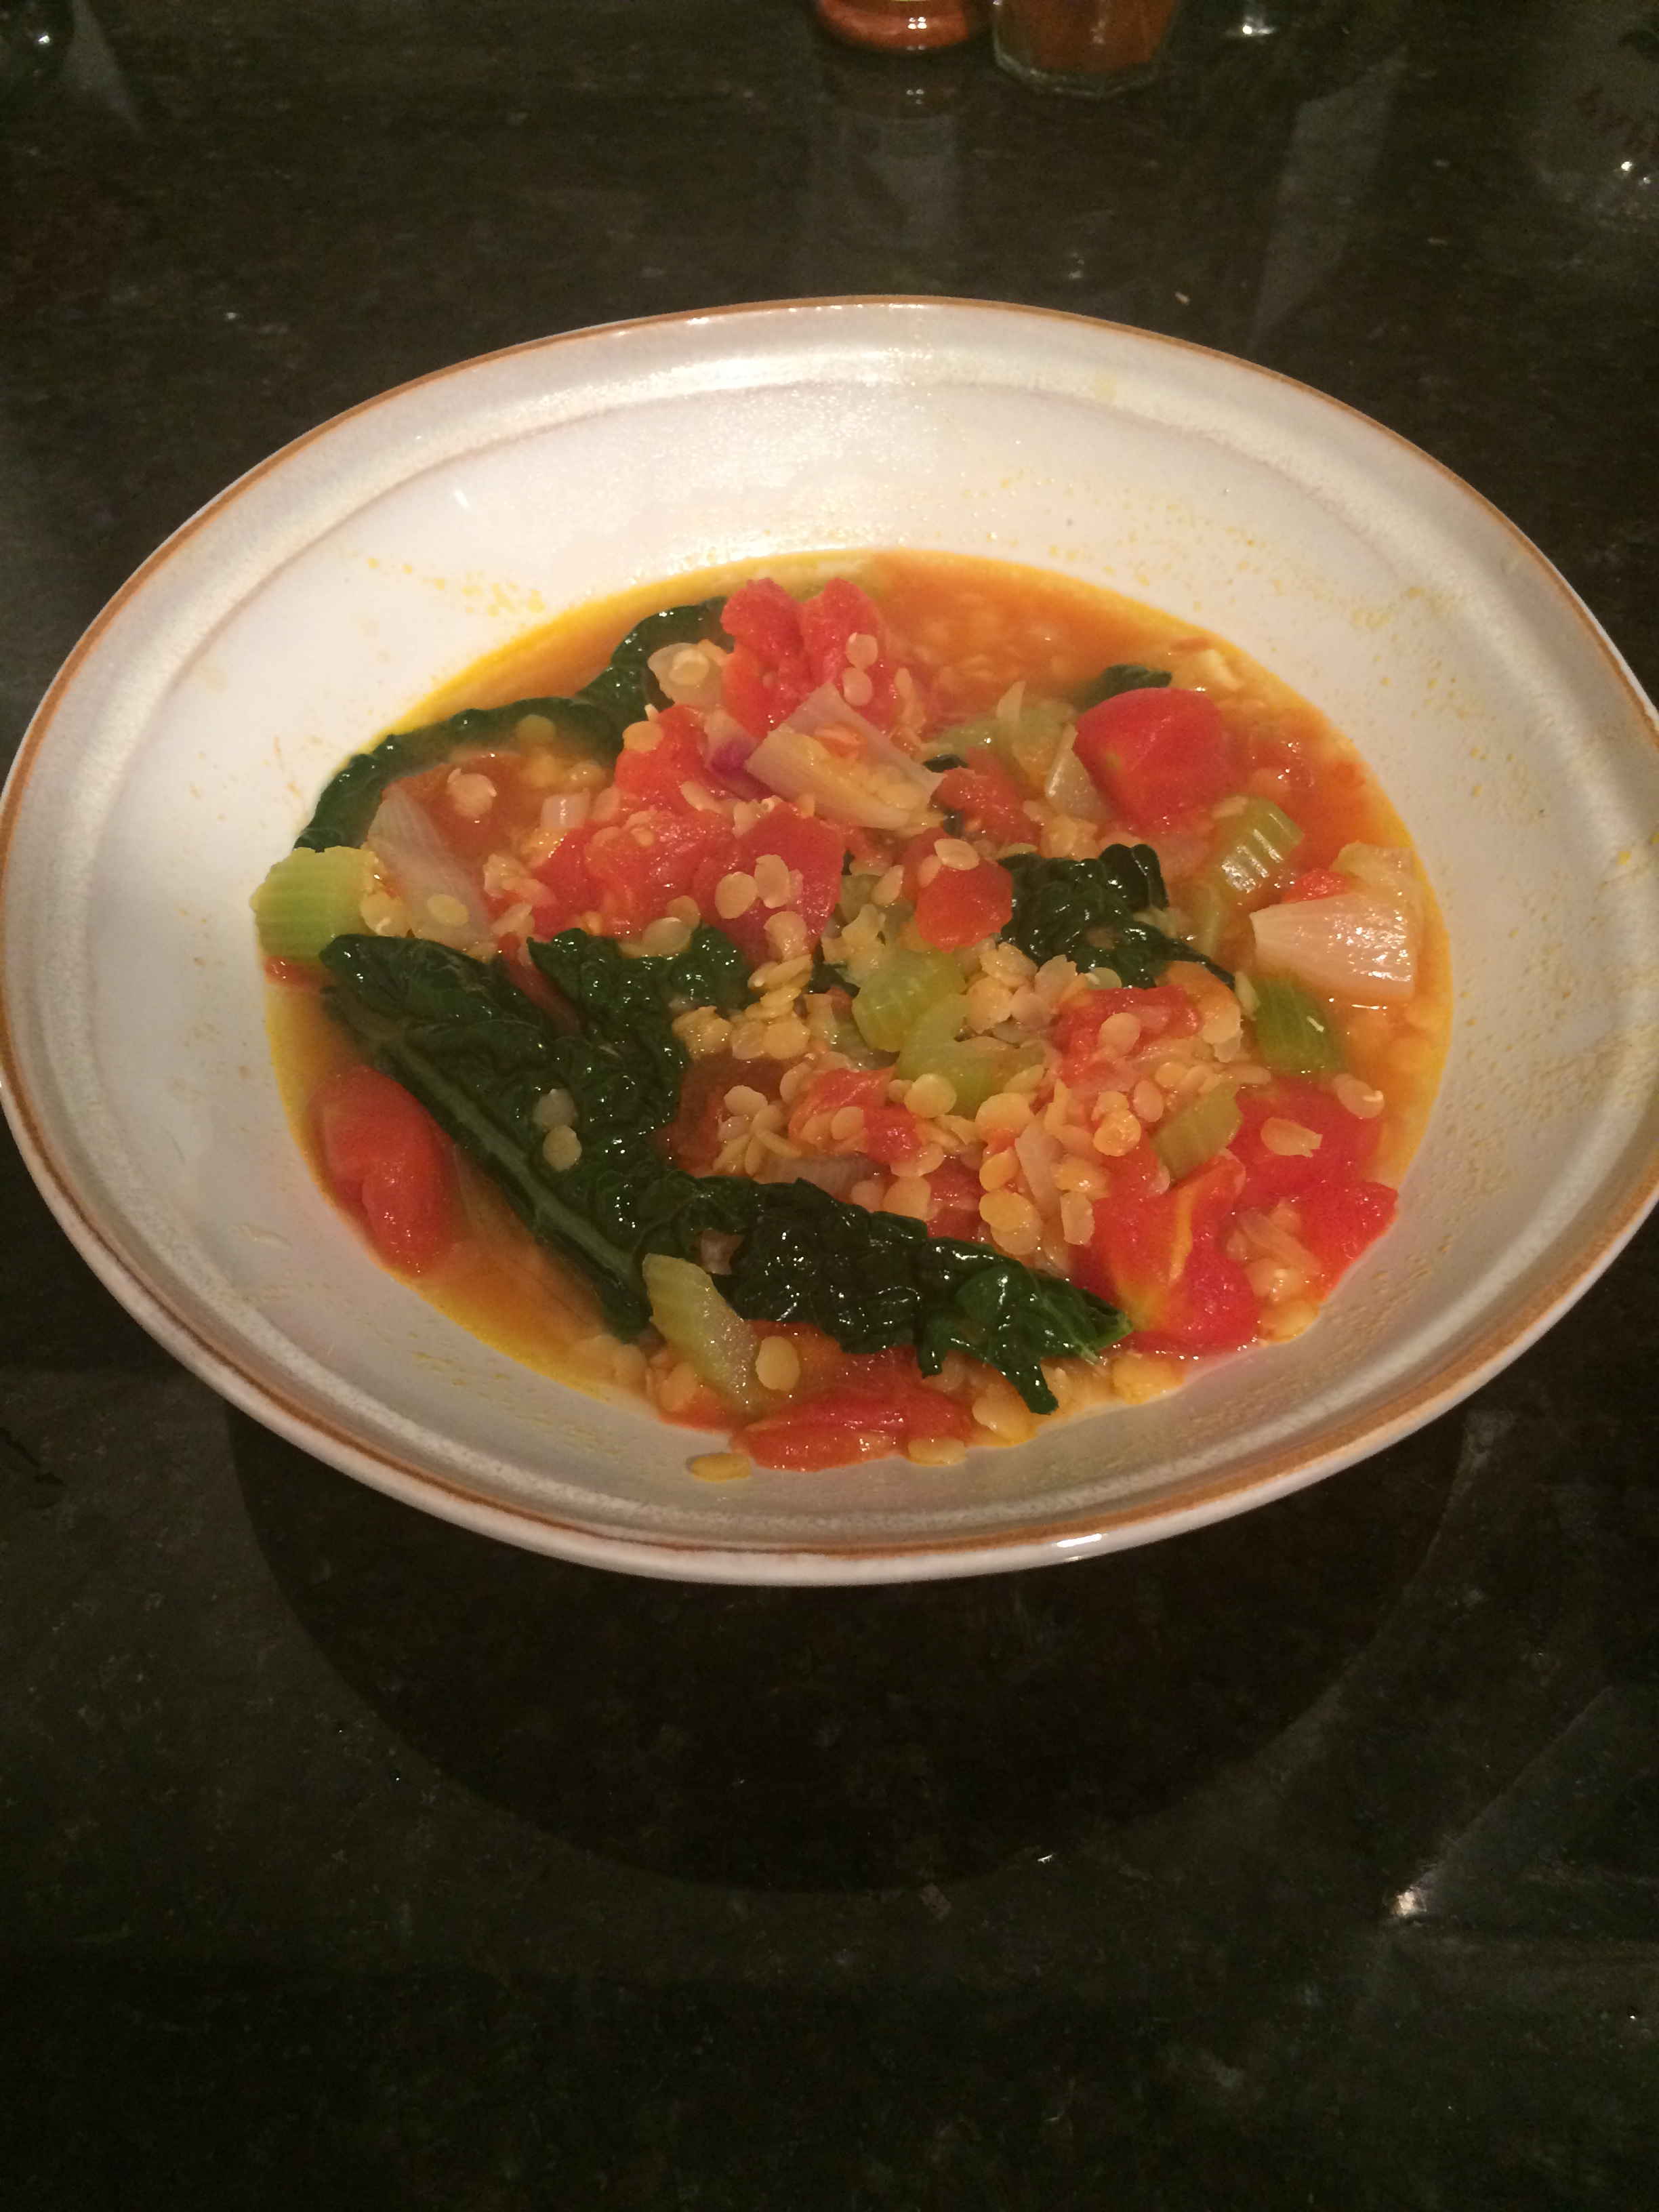 ... Recipe: Oh She Glow's Spiced Red Lentil, Tomato, and Kale Soup